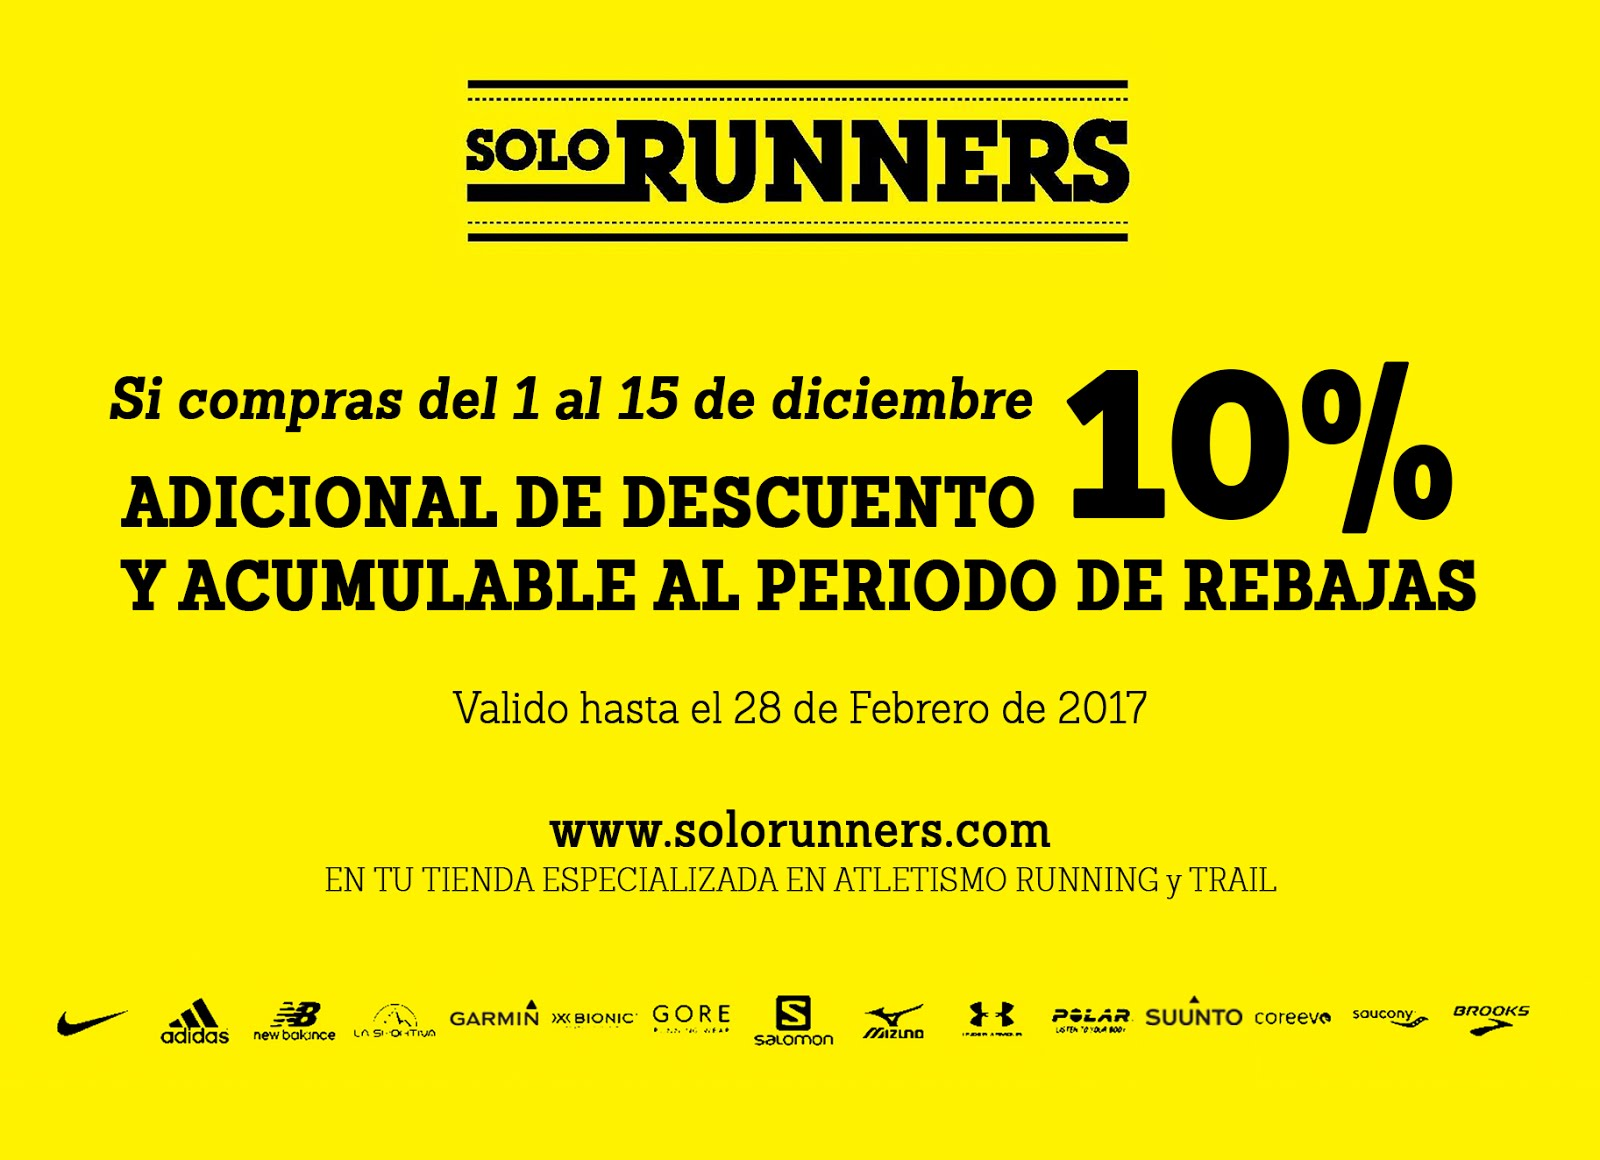 PROMO SOLORUNNERS